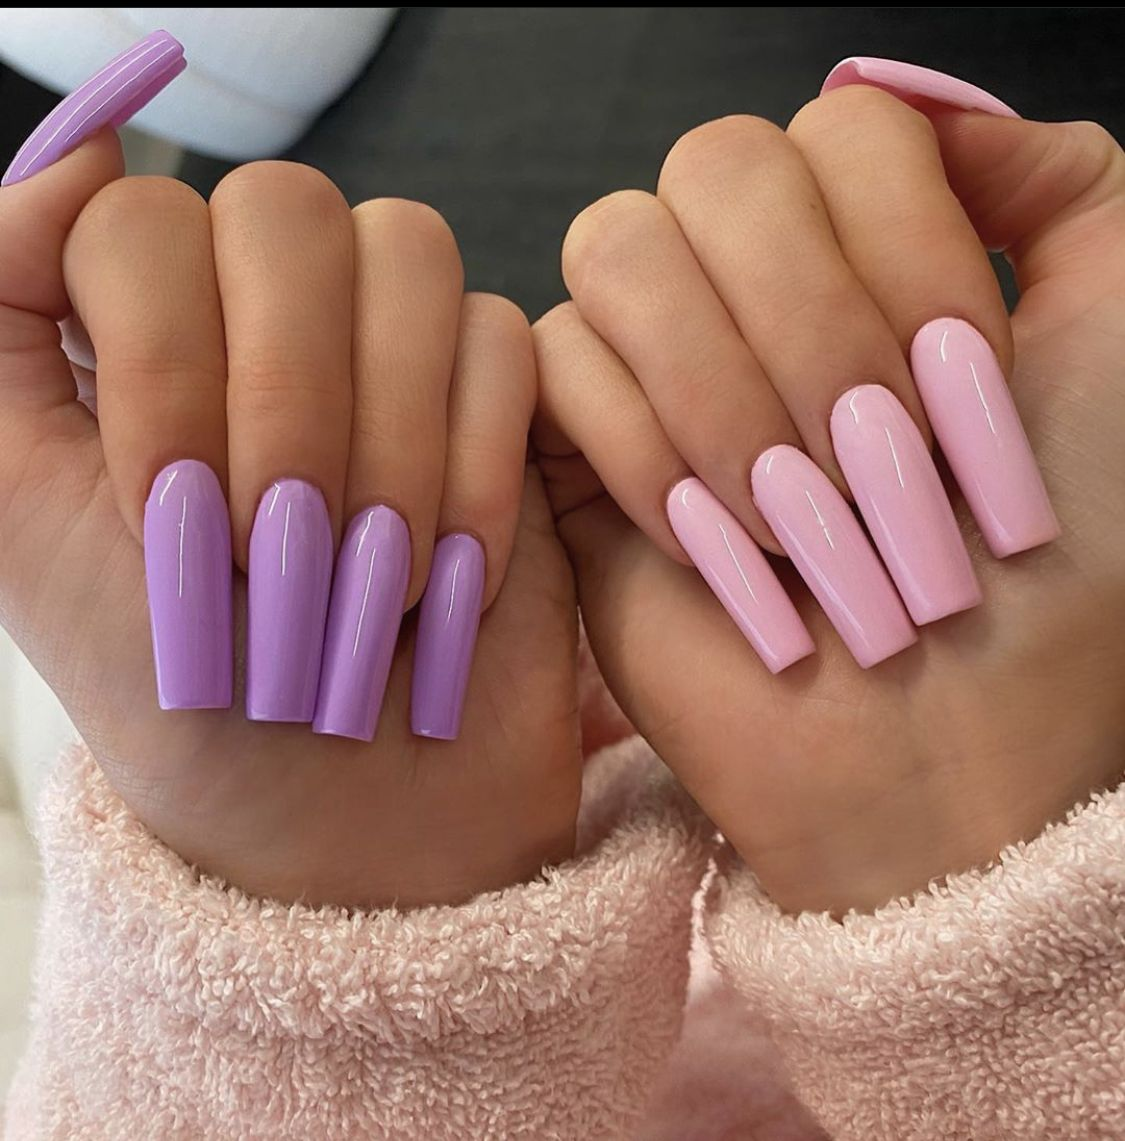 Kylie Jenner Pink Purple Acrylic Nails In 2020 Kylie Nails Purple Acrylic Nails Pink Acrylic Nails